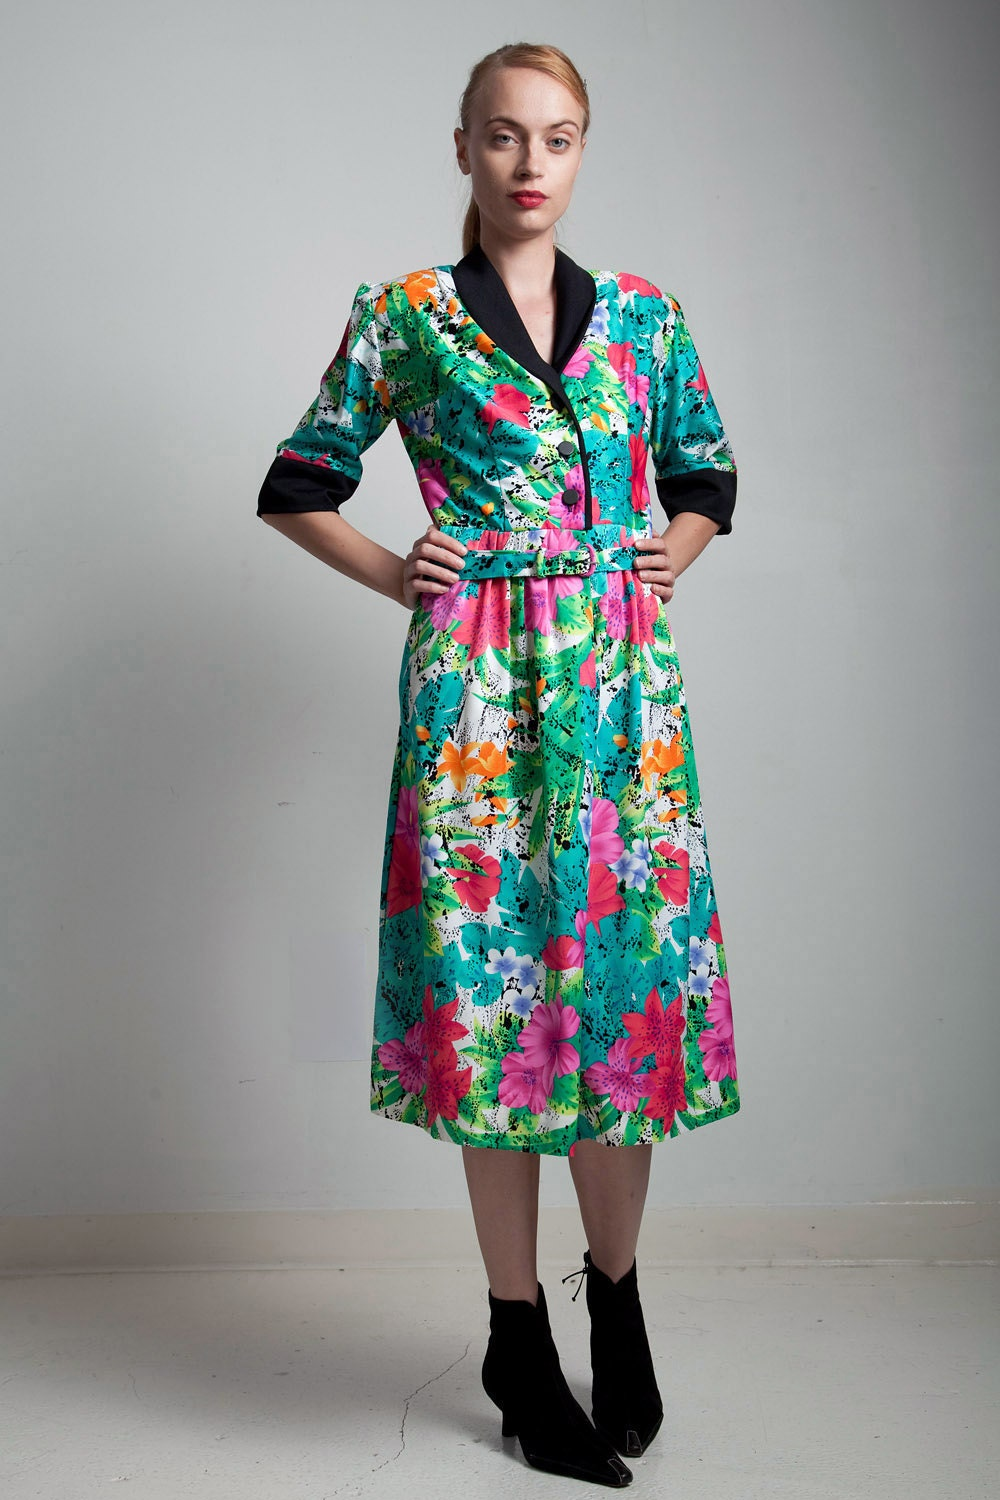 459312555c5 Belted shirt dress 70s vintage bright green colorful floral